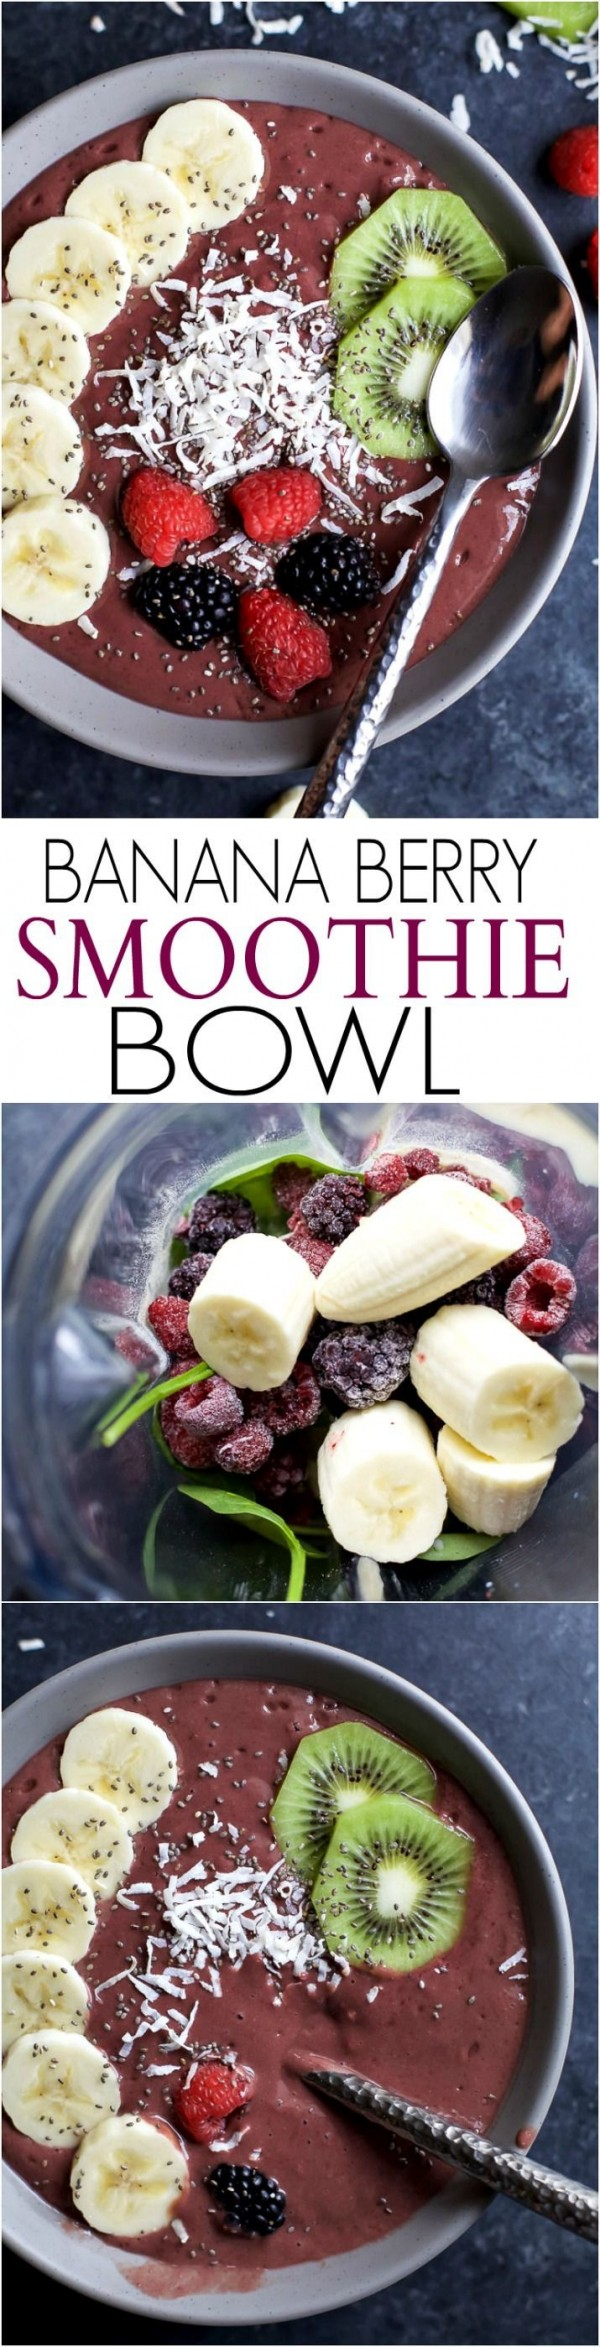 Get the recipe Banana Berry Smoothie Bowl @recipes_to_go